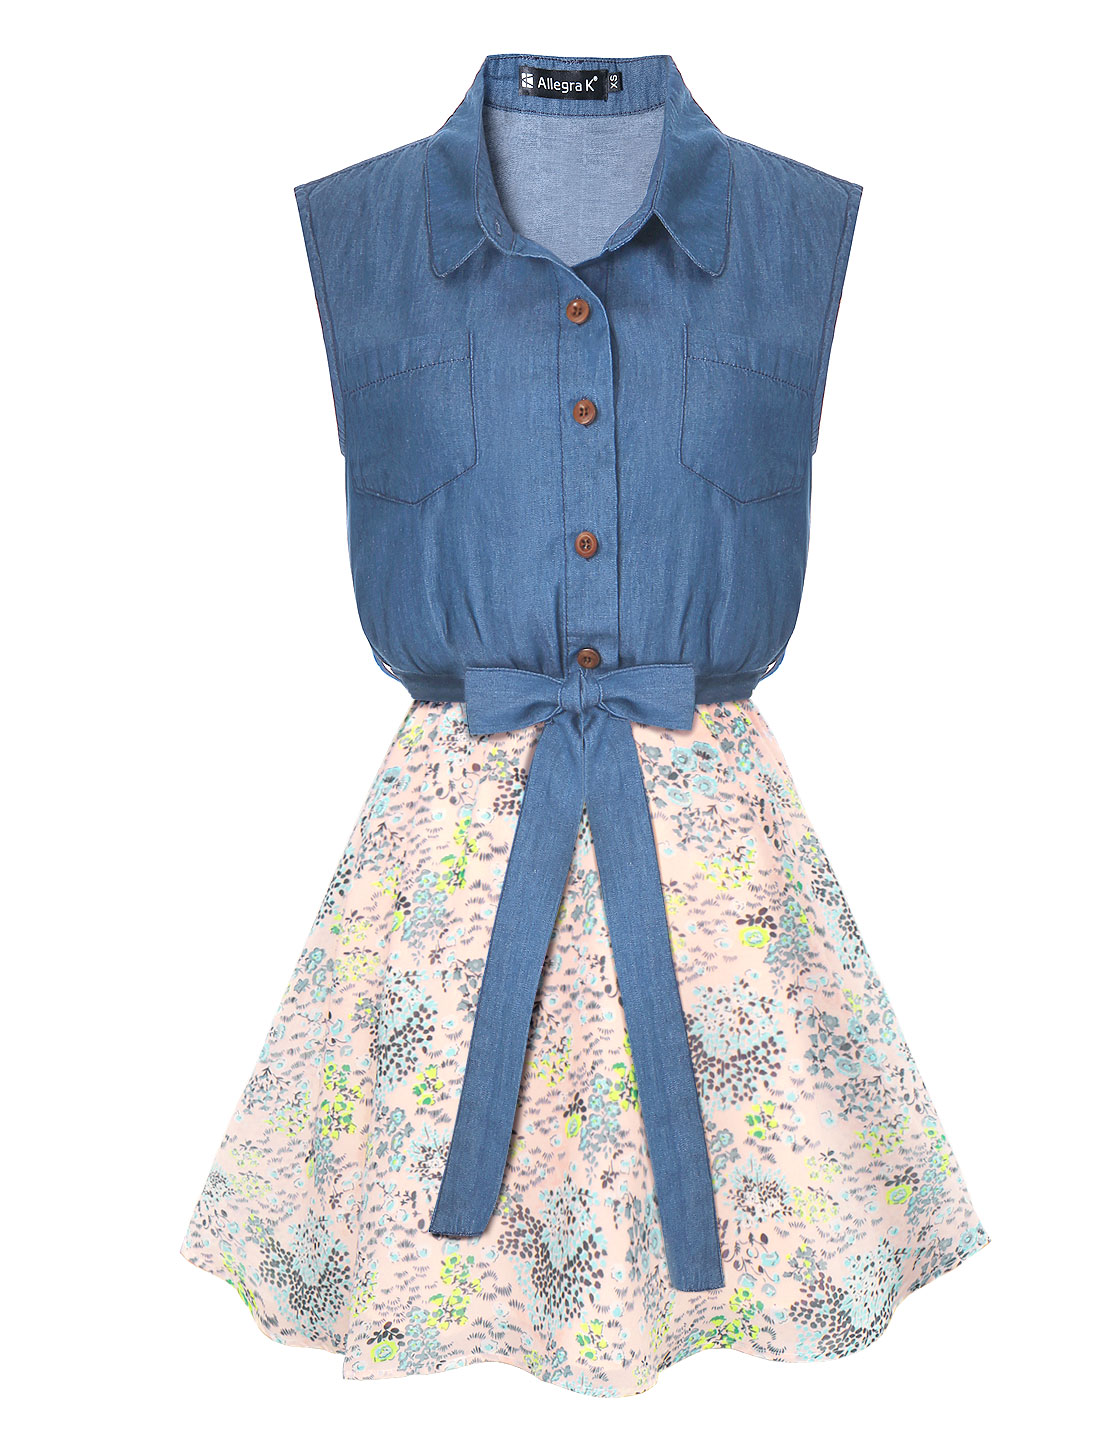 Lady Half Placket Flower Chiffon Panel Belted Denim Shirt Dress Pink XS